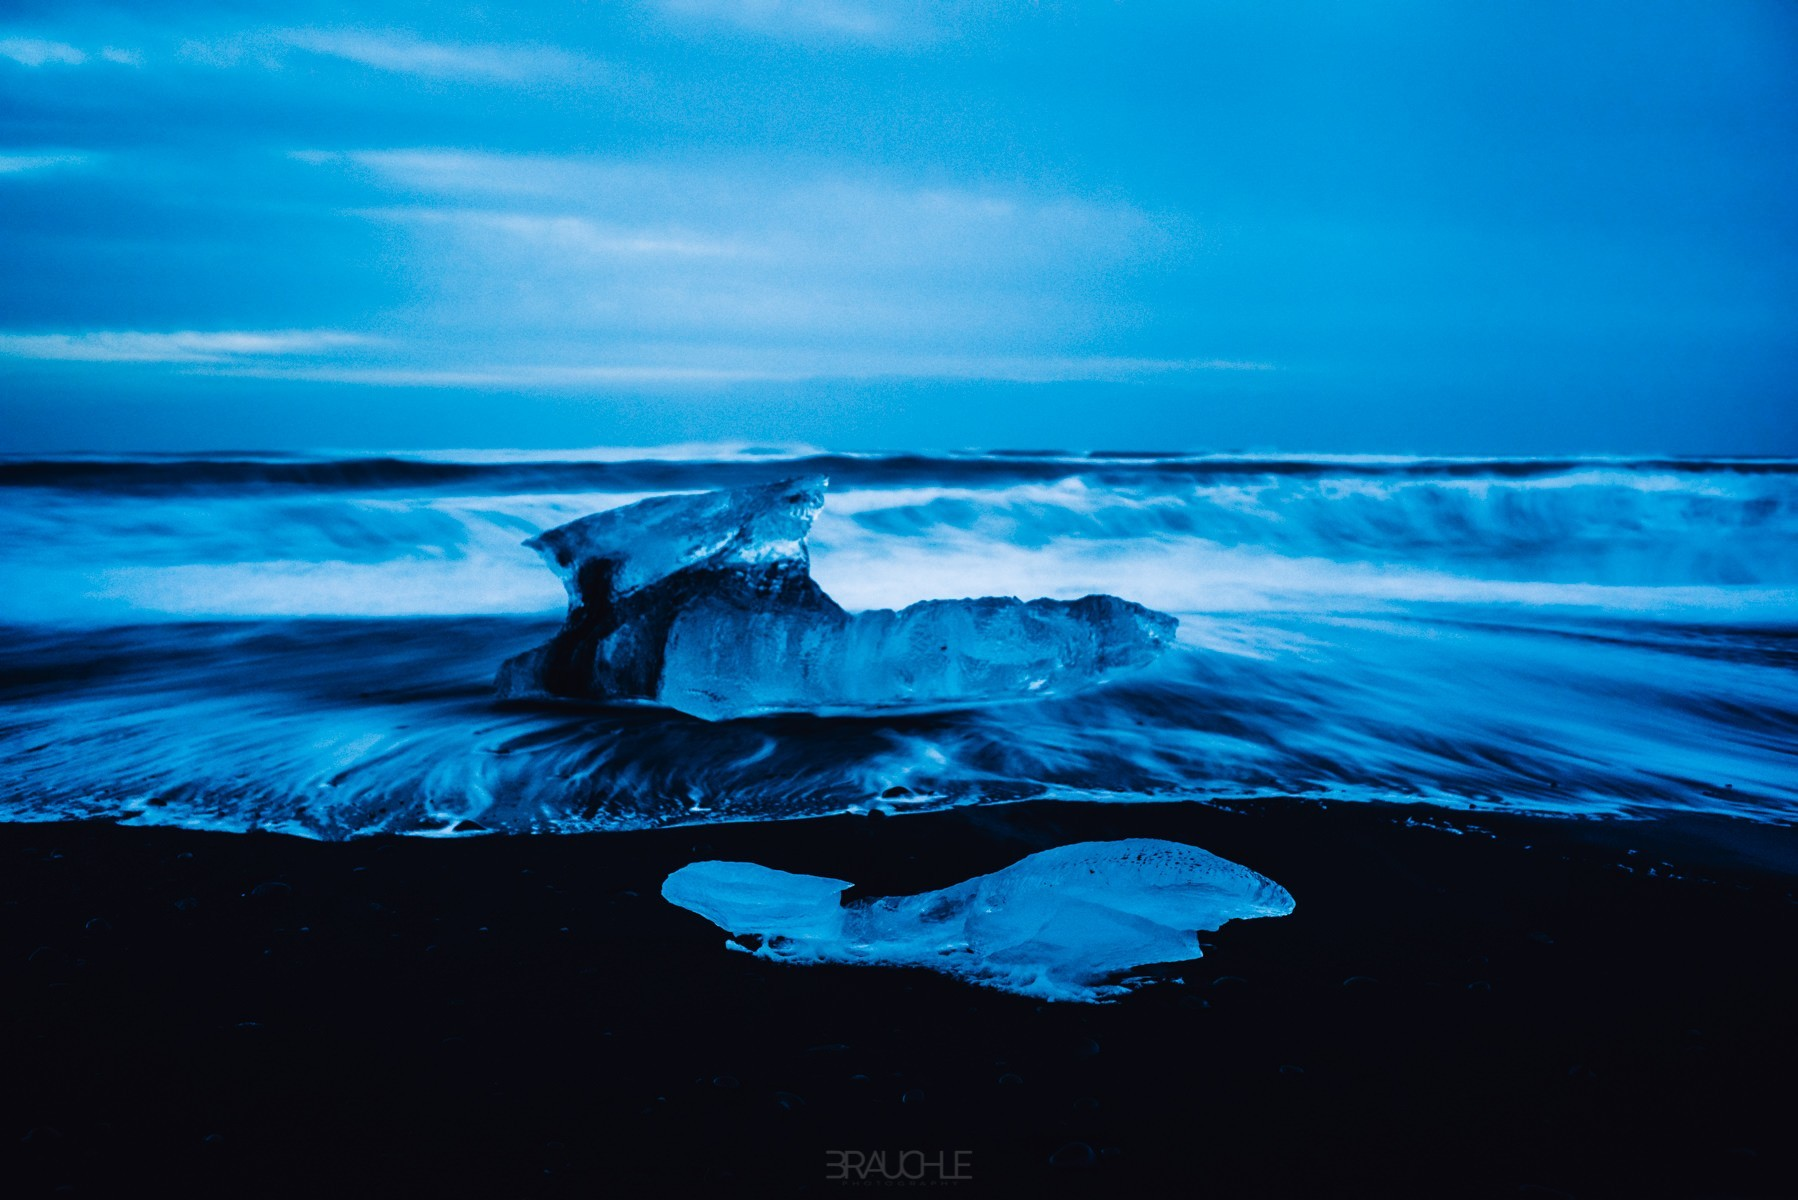 iceland-joekurlarlon-black-beach-ice-blocks-3